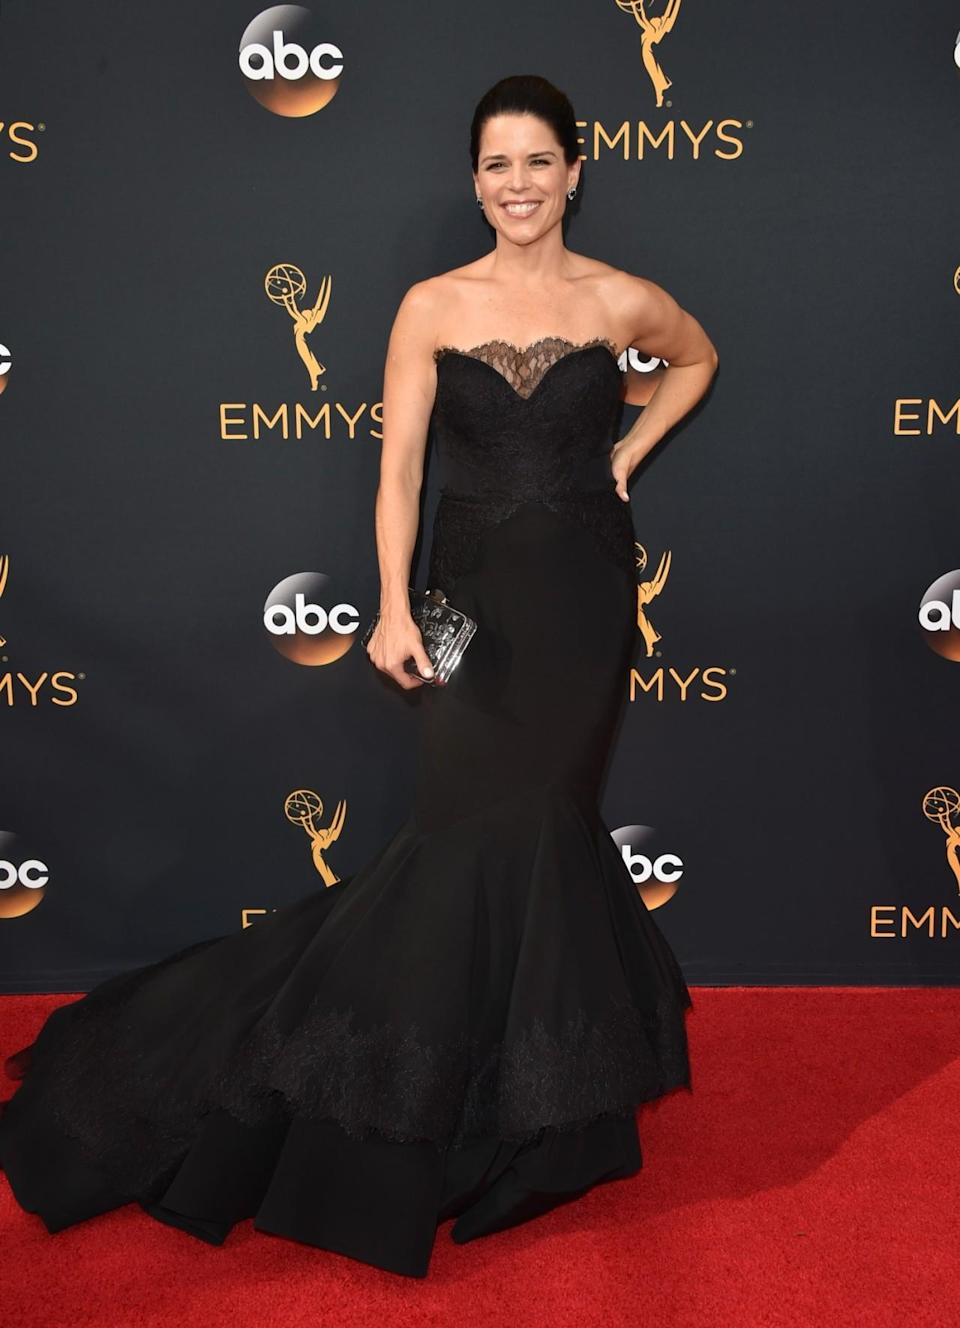 """<p>""""This beauty @nevecampbell doesn't age and it was a pleasure creating this custom lace appliqué gown for her,"""" Siriano wrote on Instagram. <em>(Photo: Getty Images)</em></p>"""